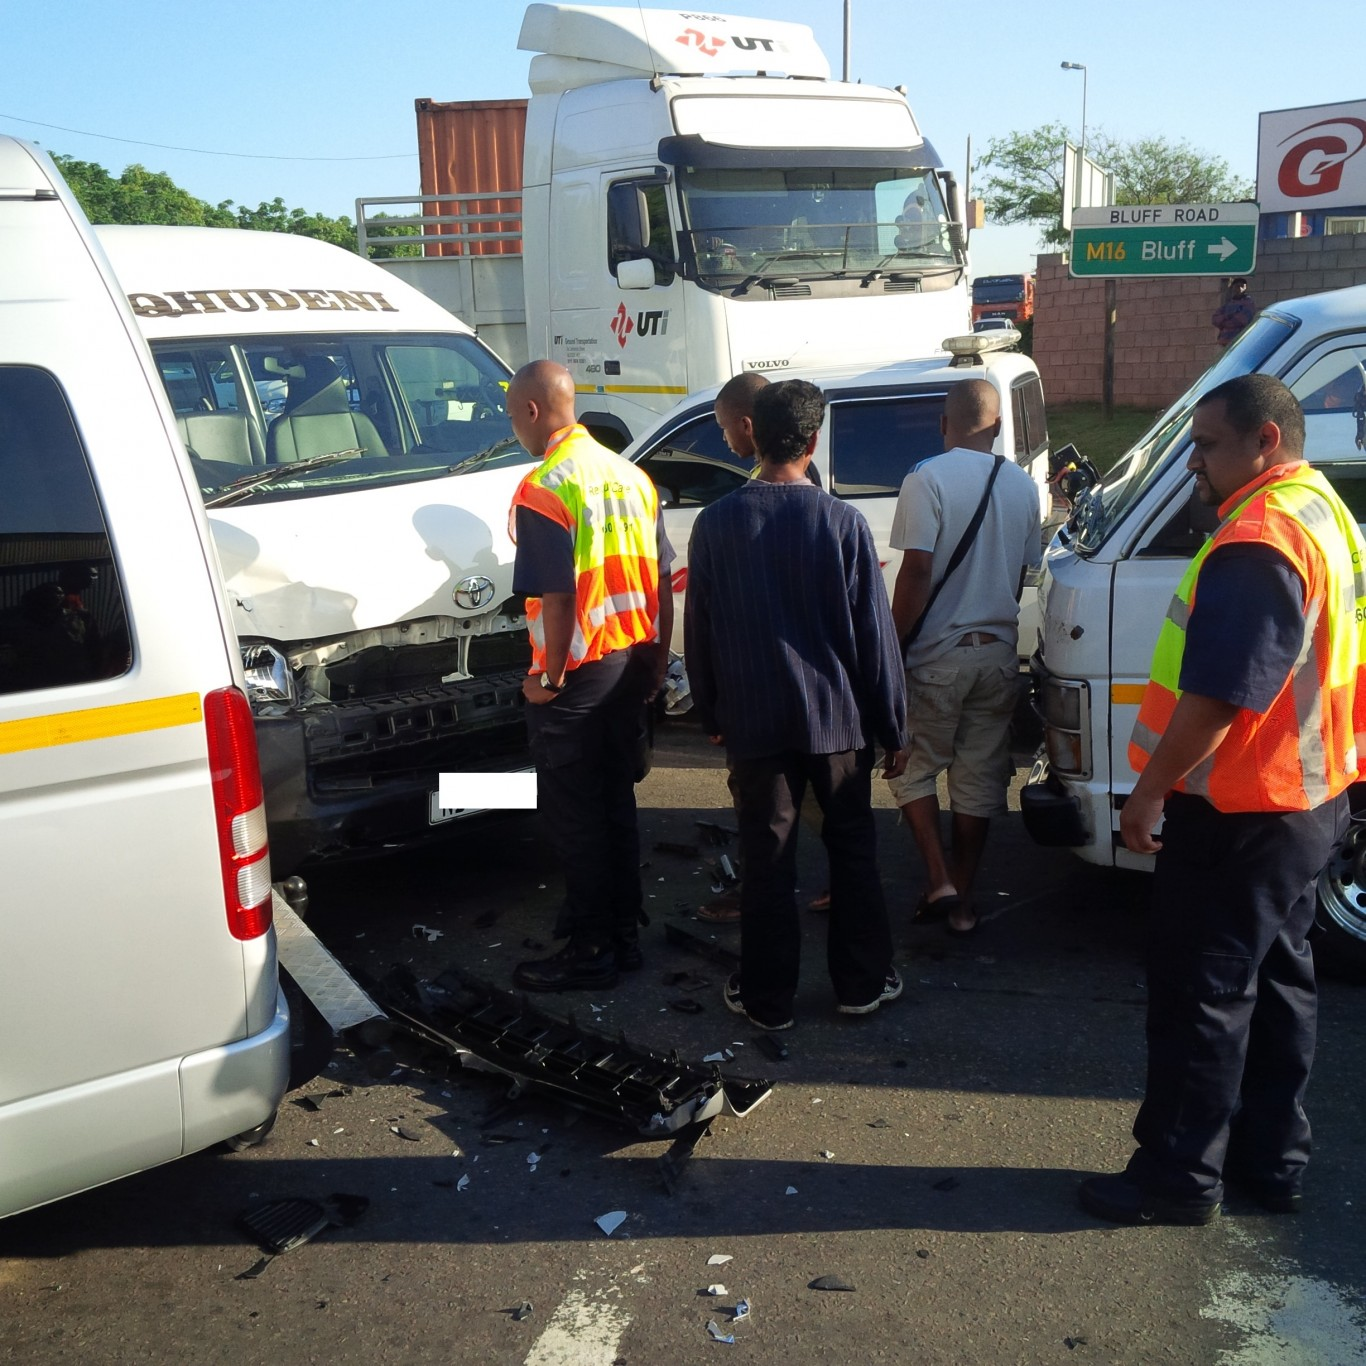 3 Taxis and a car collided Bluff injuring 5 people